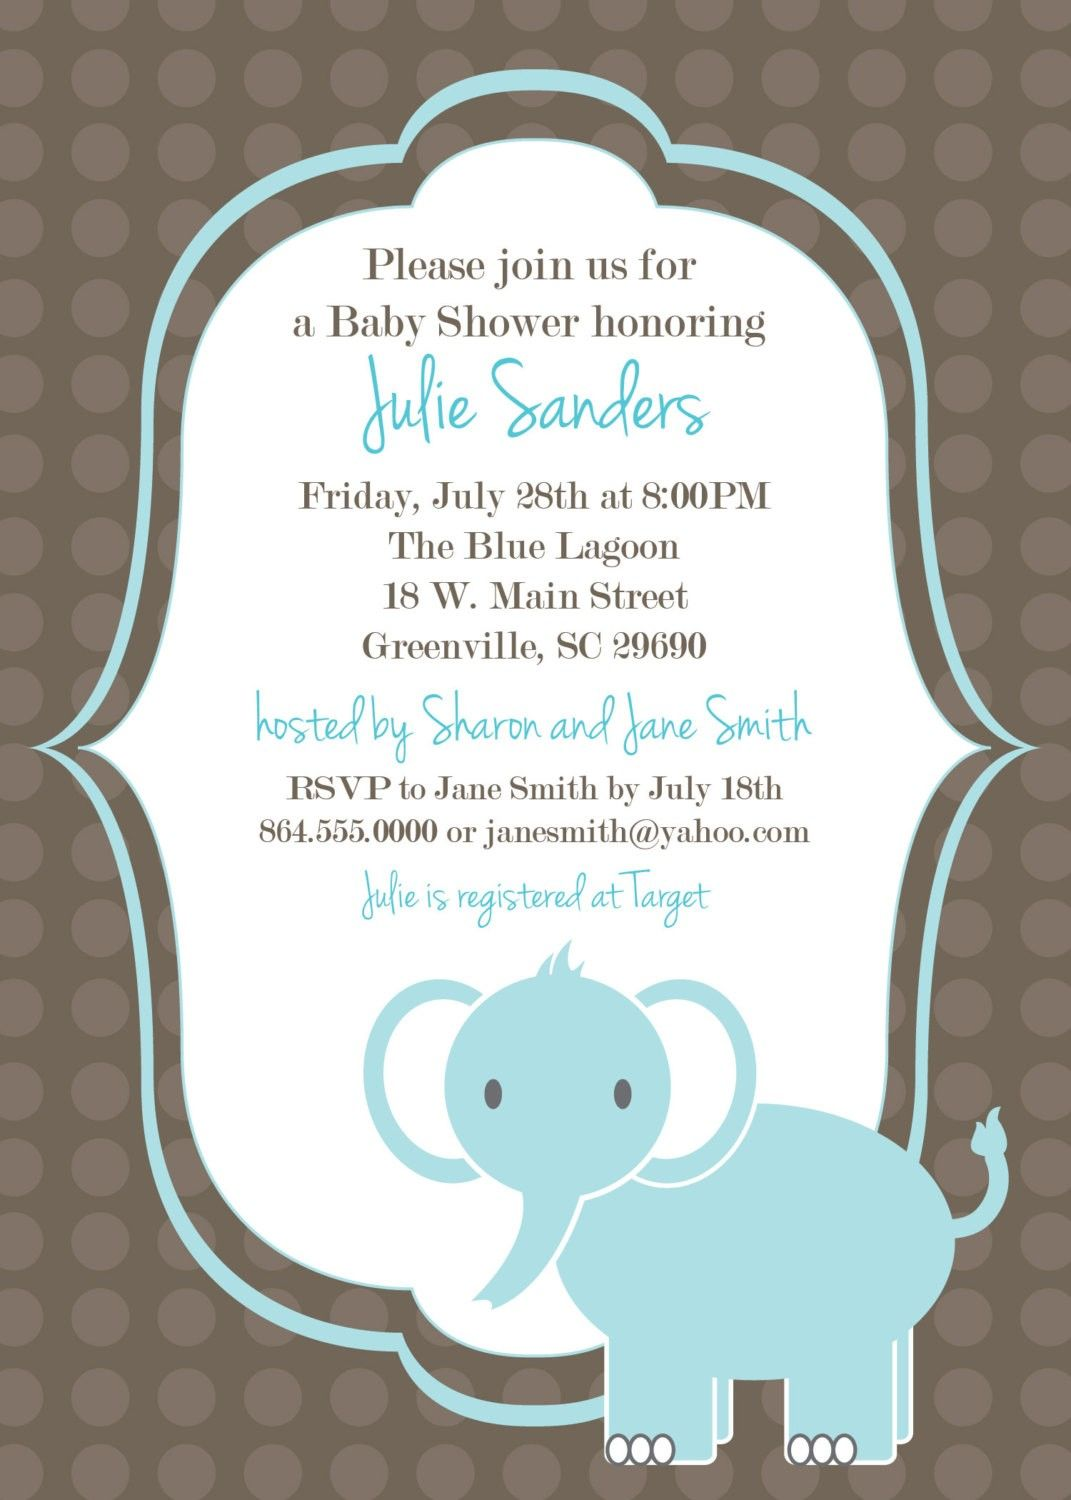 free printable baby shower invitation templates | fonts, labels, Baby shower invitations